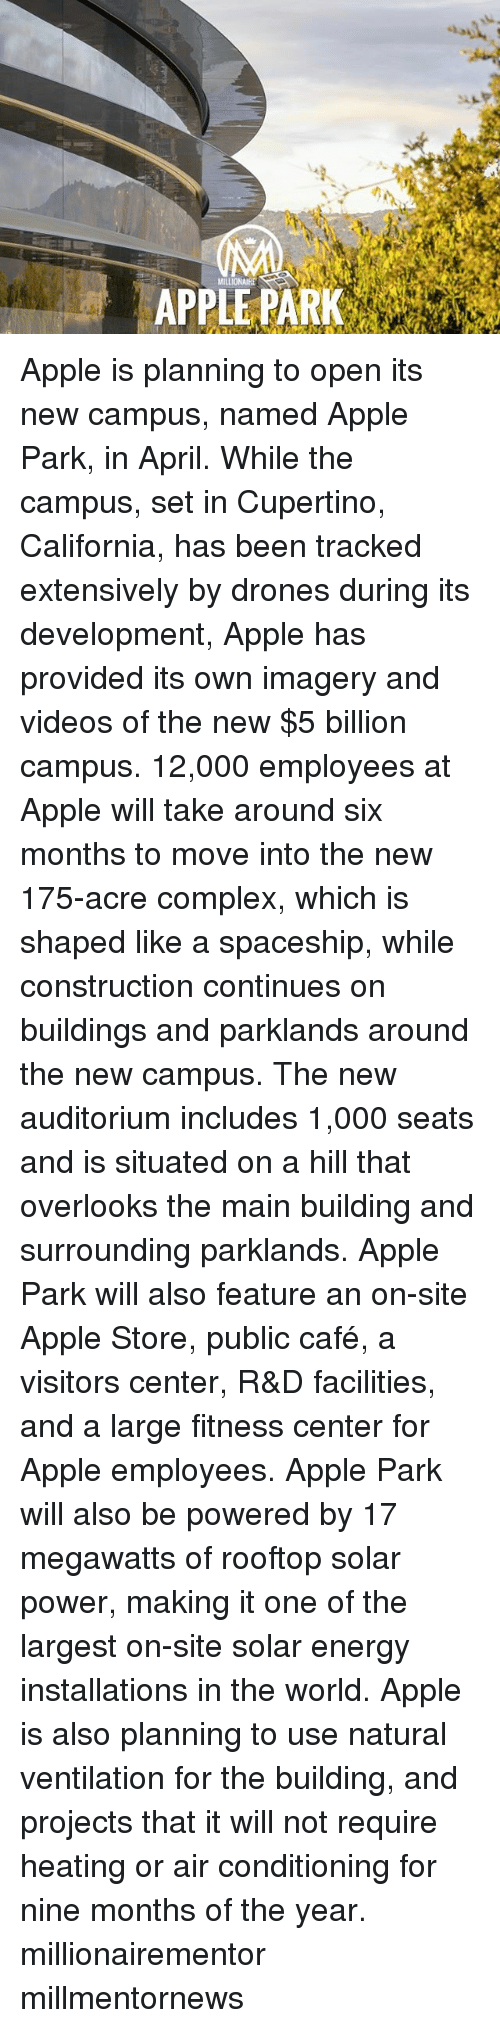 Complex, Memes, and California: MILLIONAIRE Apple is planning to open its new campus, named Apple Park, in April. While the campus, set in Cupertino, California, has been tracked extensively by drones during its development, Apple has provided its own imagery and videos of the new $5 billion campus. 12,000 employees at Apple will take around six months to move into the new 175-acre complex, which is shaped like a spaceship, while construction continues on buildings and parklands around the new campus. The new auditorium includes 1,000 seats and is situated on a hill that overlooks the main building and surrounding parklands. Apple Park will also feature an on-site Apple Store, public café, a visitors center, R&D facilities, and a large fitness center for Apple employees. Apple Park will also be powered by 17 megawatts of rooftop solar power, making it one of the largest on-site solar energy installations in the world. Apple is also planning to use natural ventilation for the building, and projects that it will not require heating or air conditioning for nine months of the year. millionairementor millmentornews